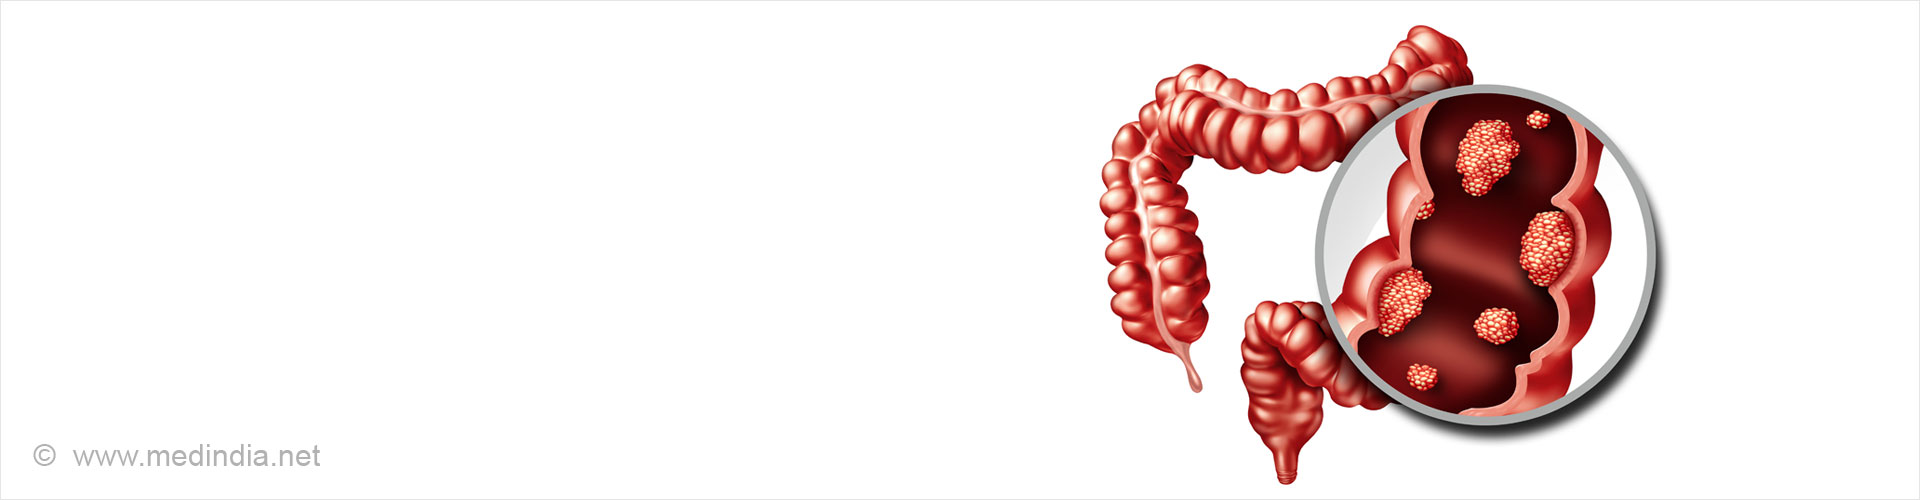 Colorectal Cancer / Colon and Rectal Cancer